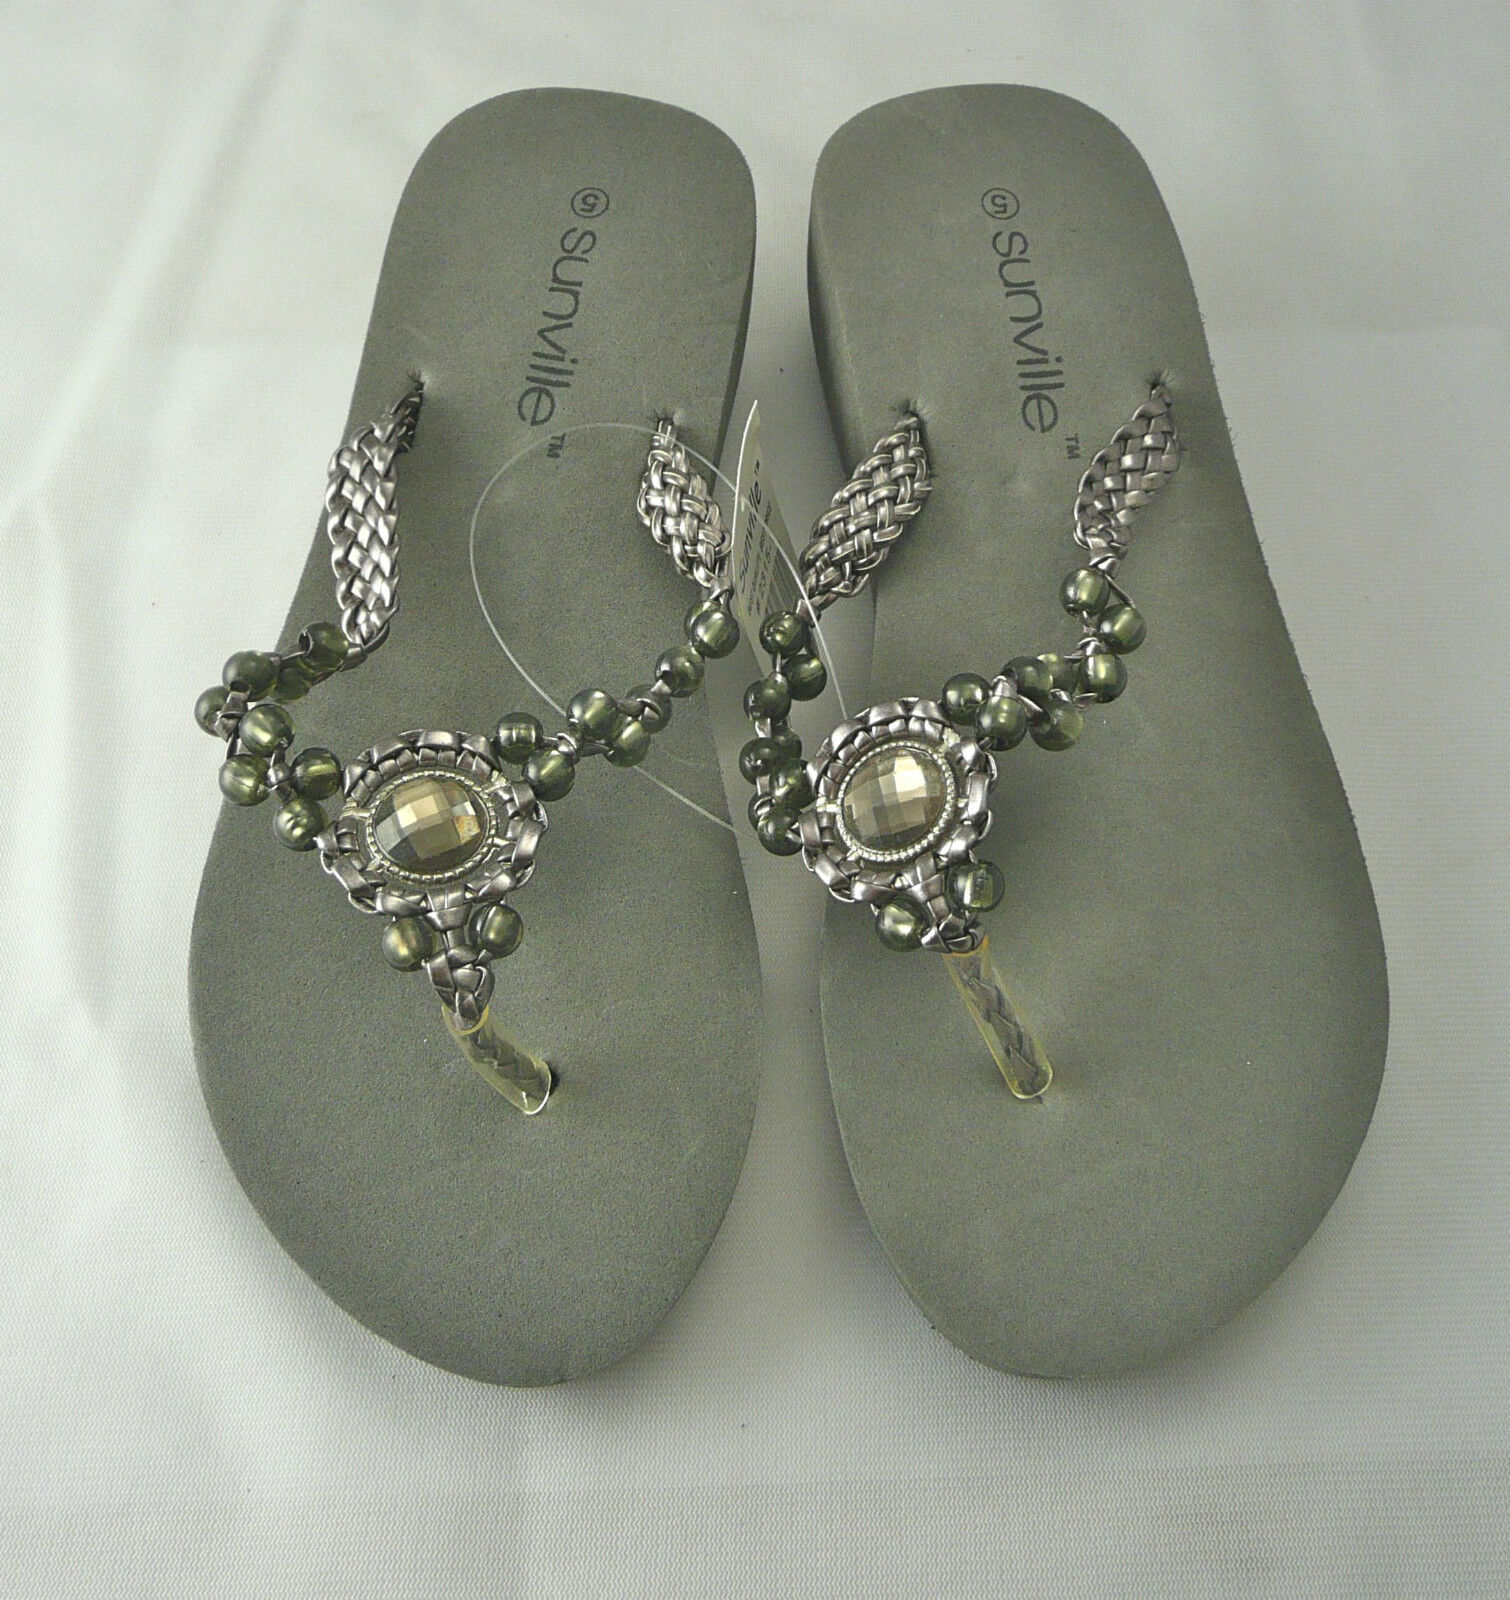 Womens Sandals/Wedges Gray solid by Sunville Brand New Free Shipping, solid Gray hard foam c6ecd0